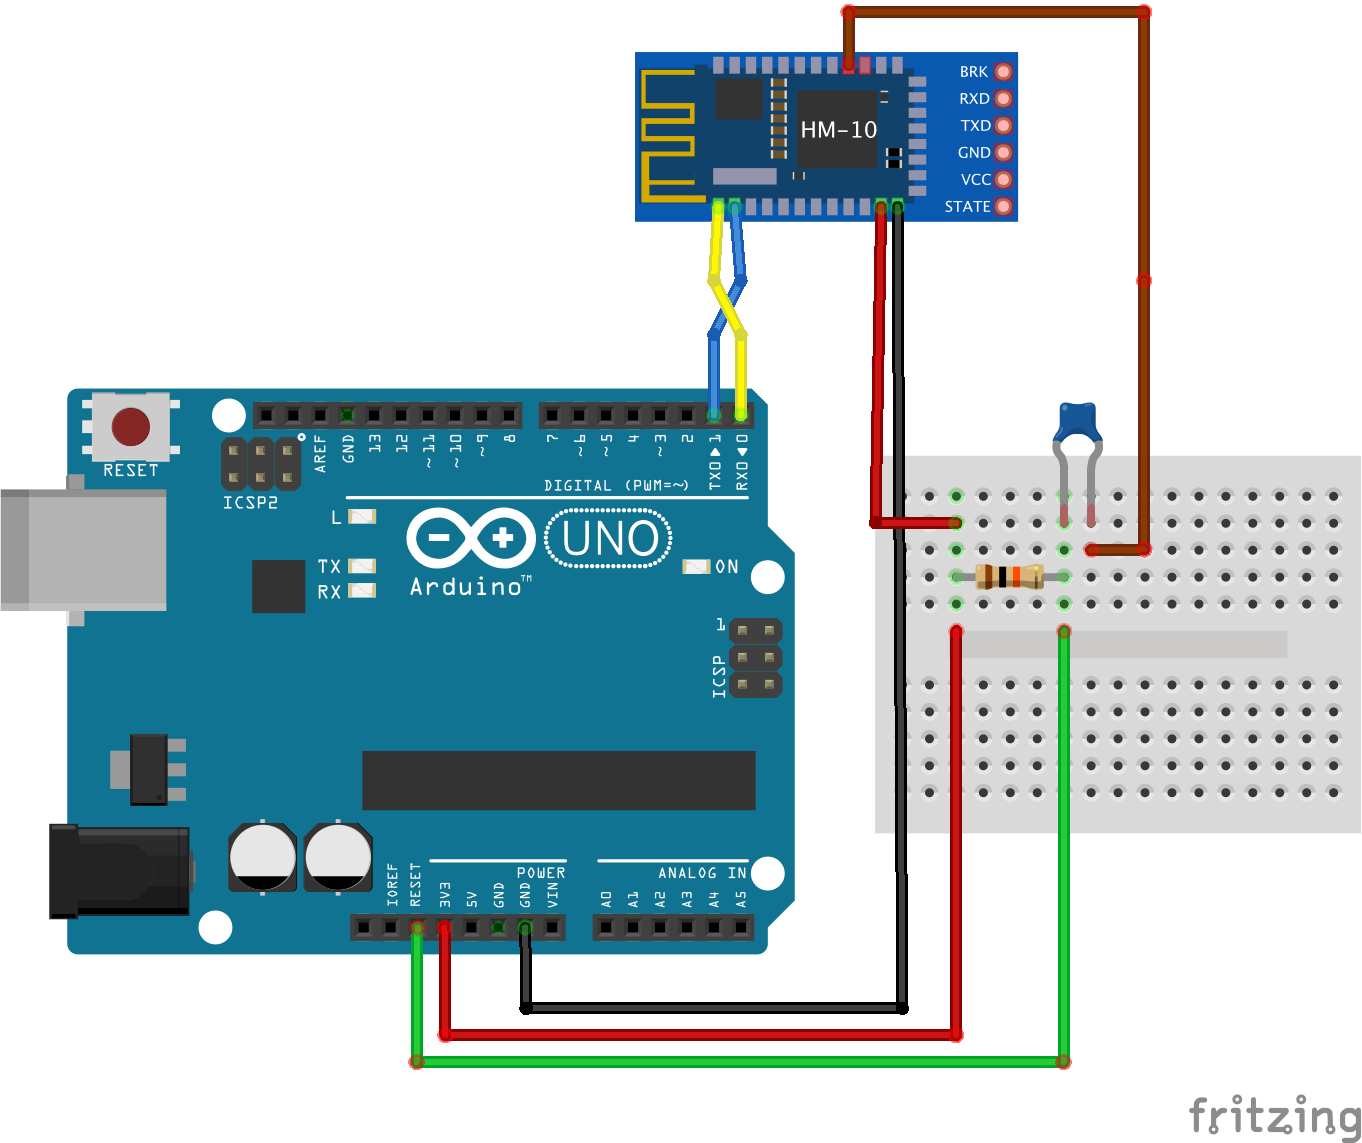 Arduino Uno SD card fails to initialize - Stack Exchange